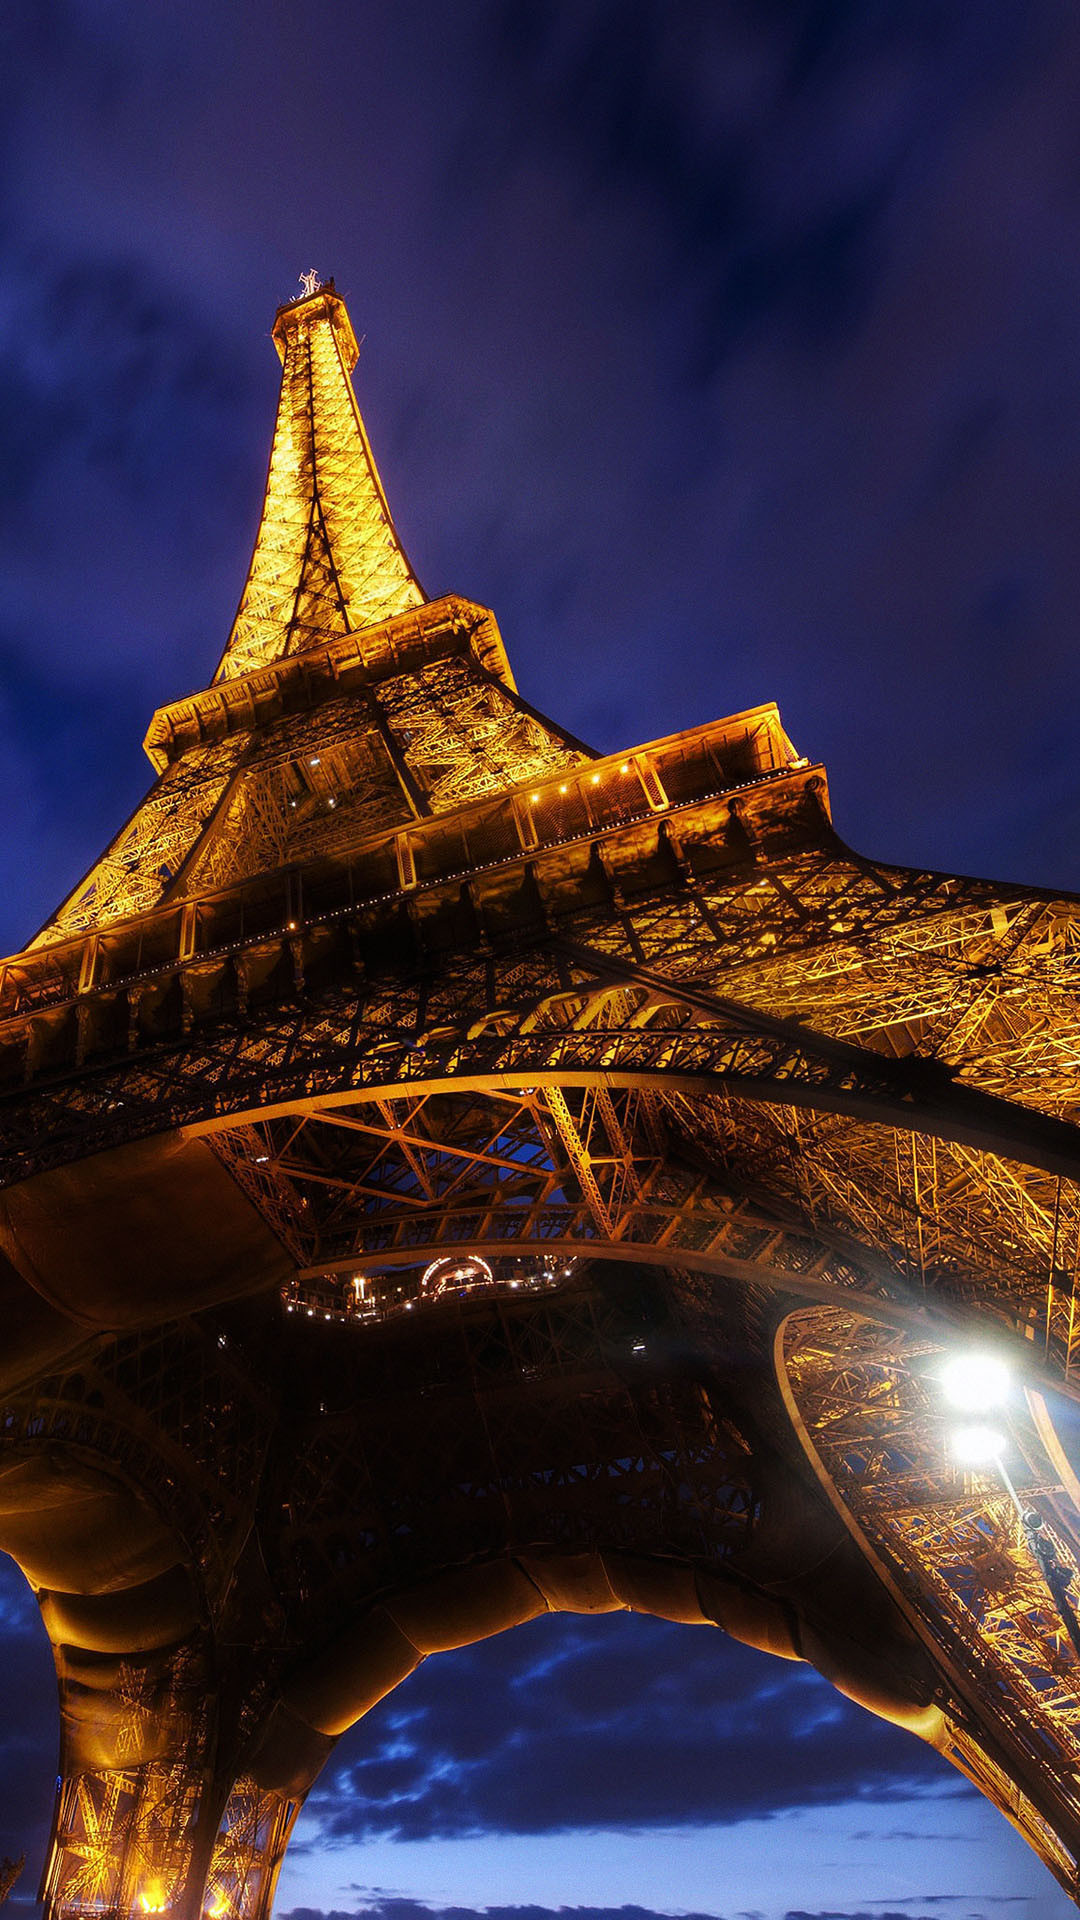 1080x1920 Eiffel Tower Paris Base View At Night Android Wallpaper ...